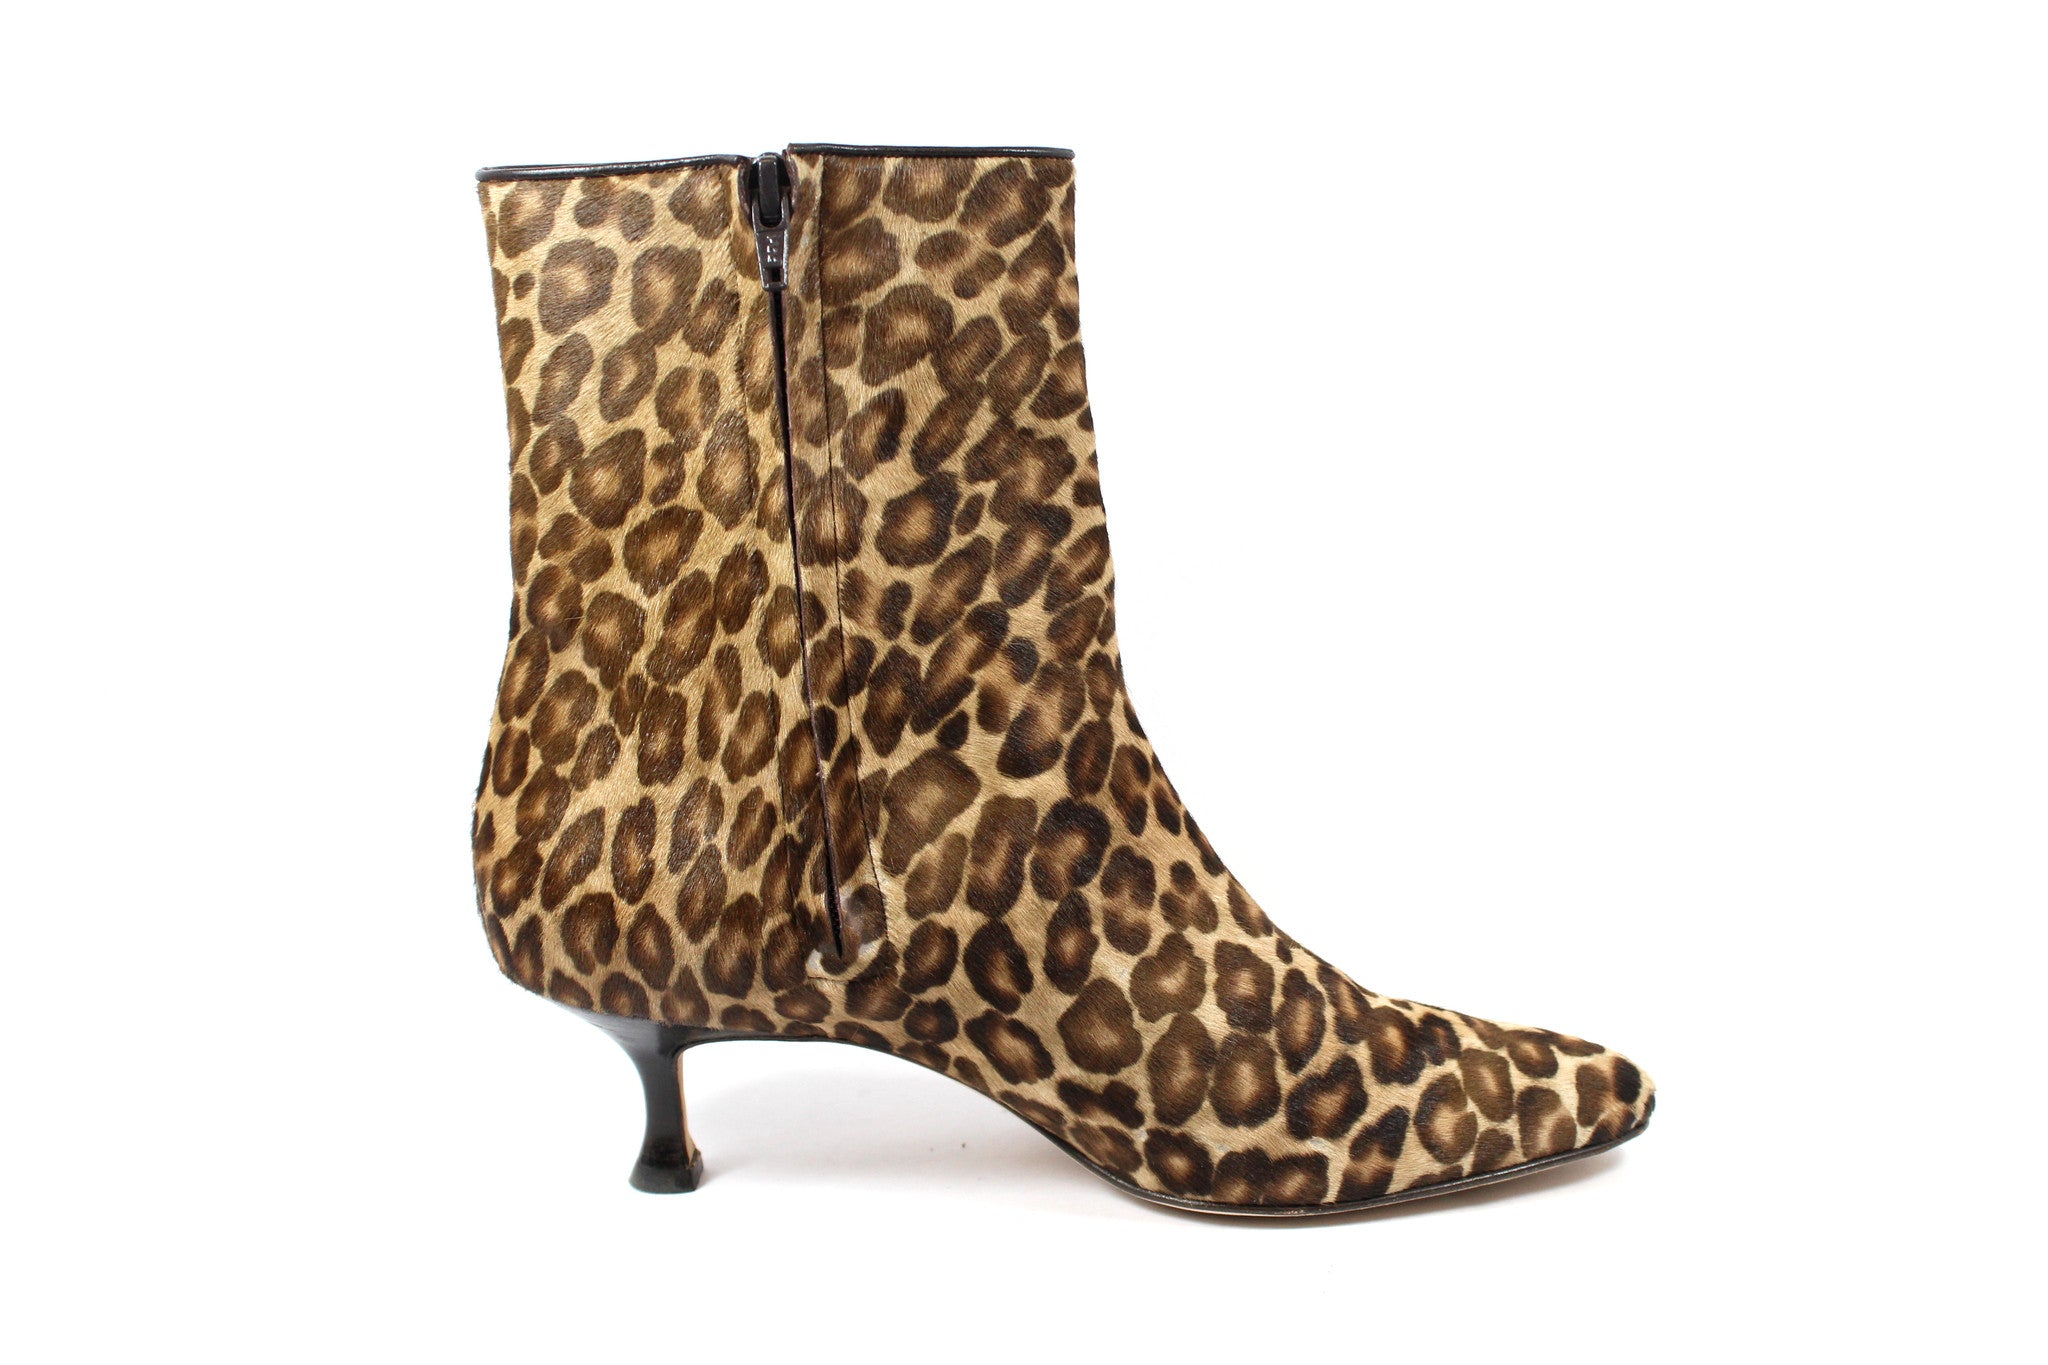 Manolo Blahnik Leopard Calf Hair Ankle Boots (Size 38) - Encore Consignment - 6